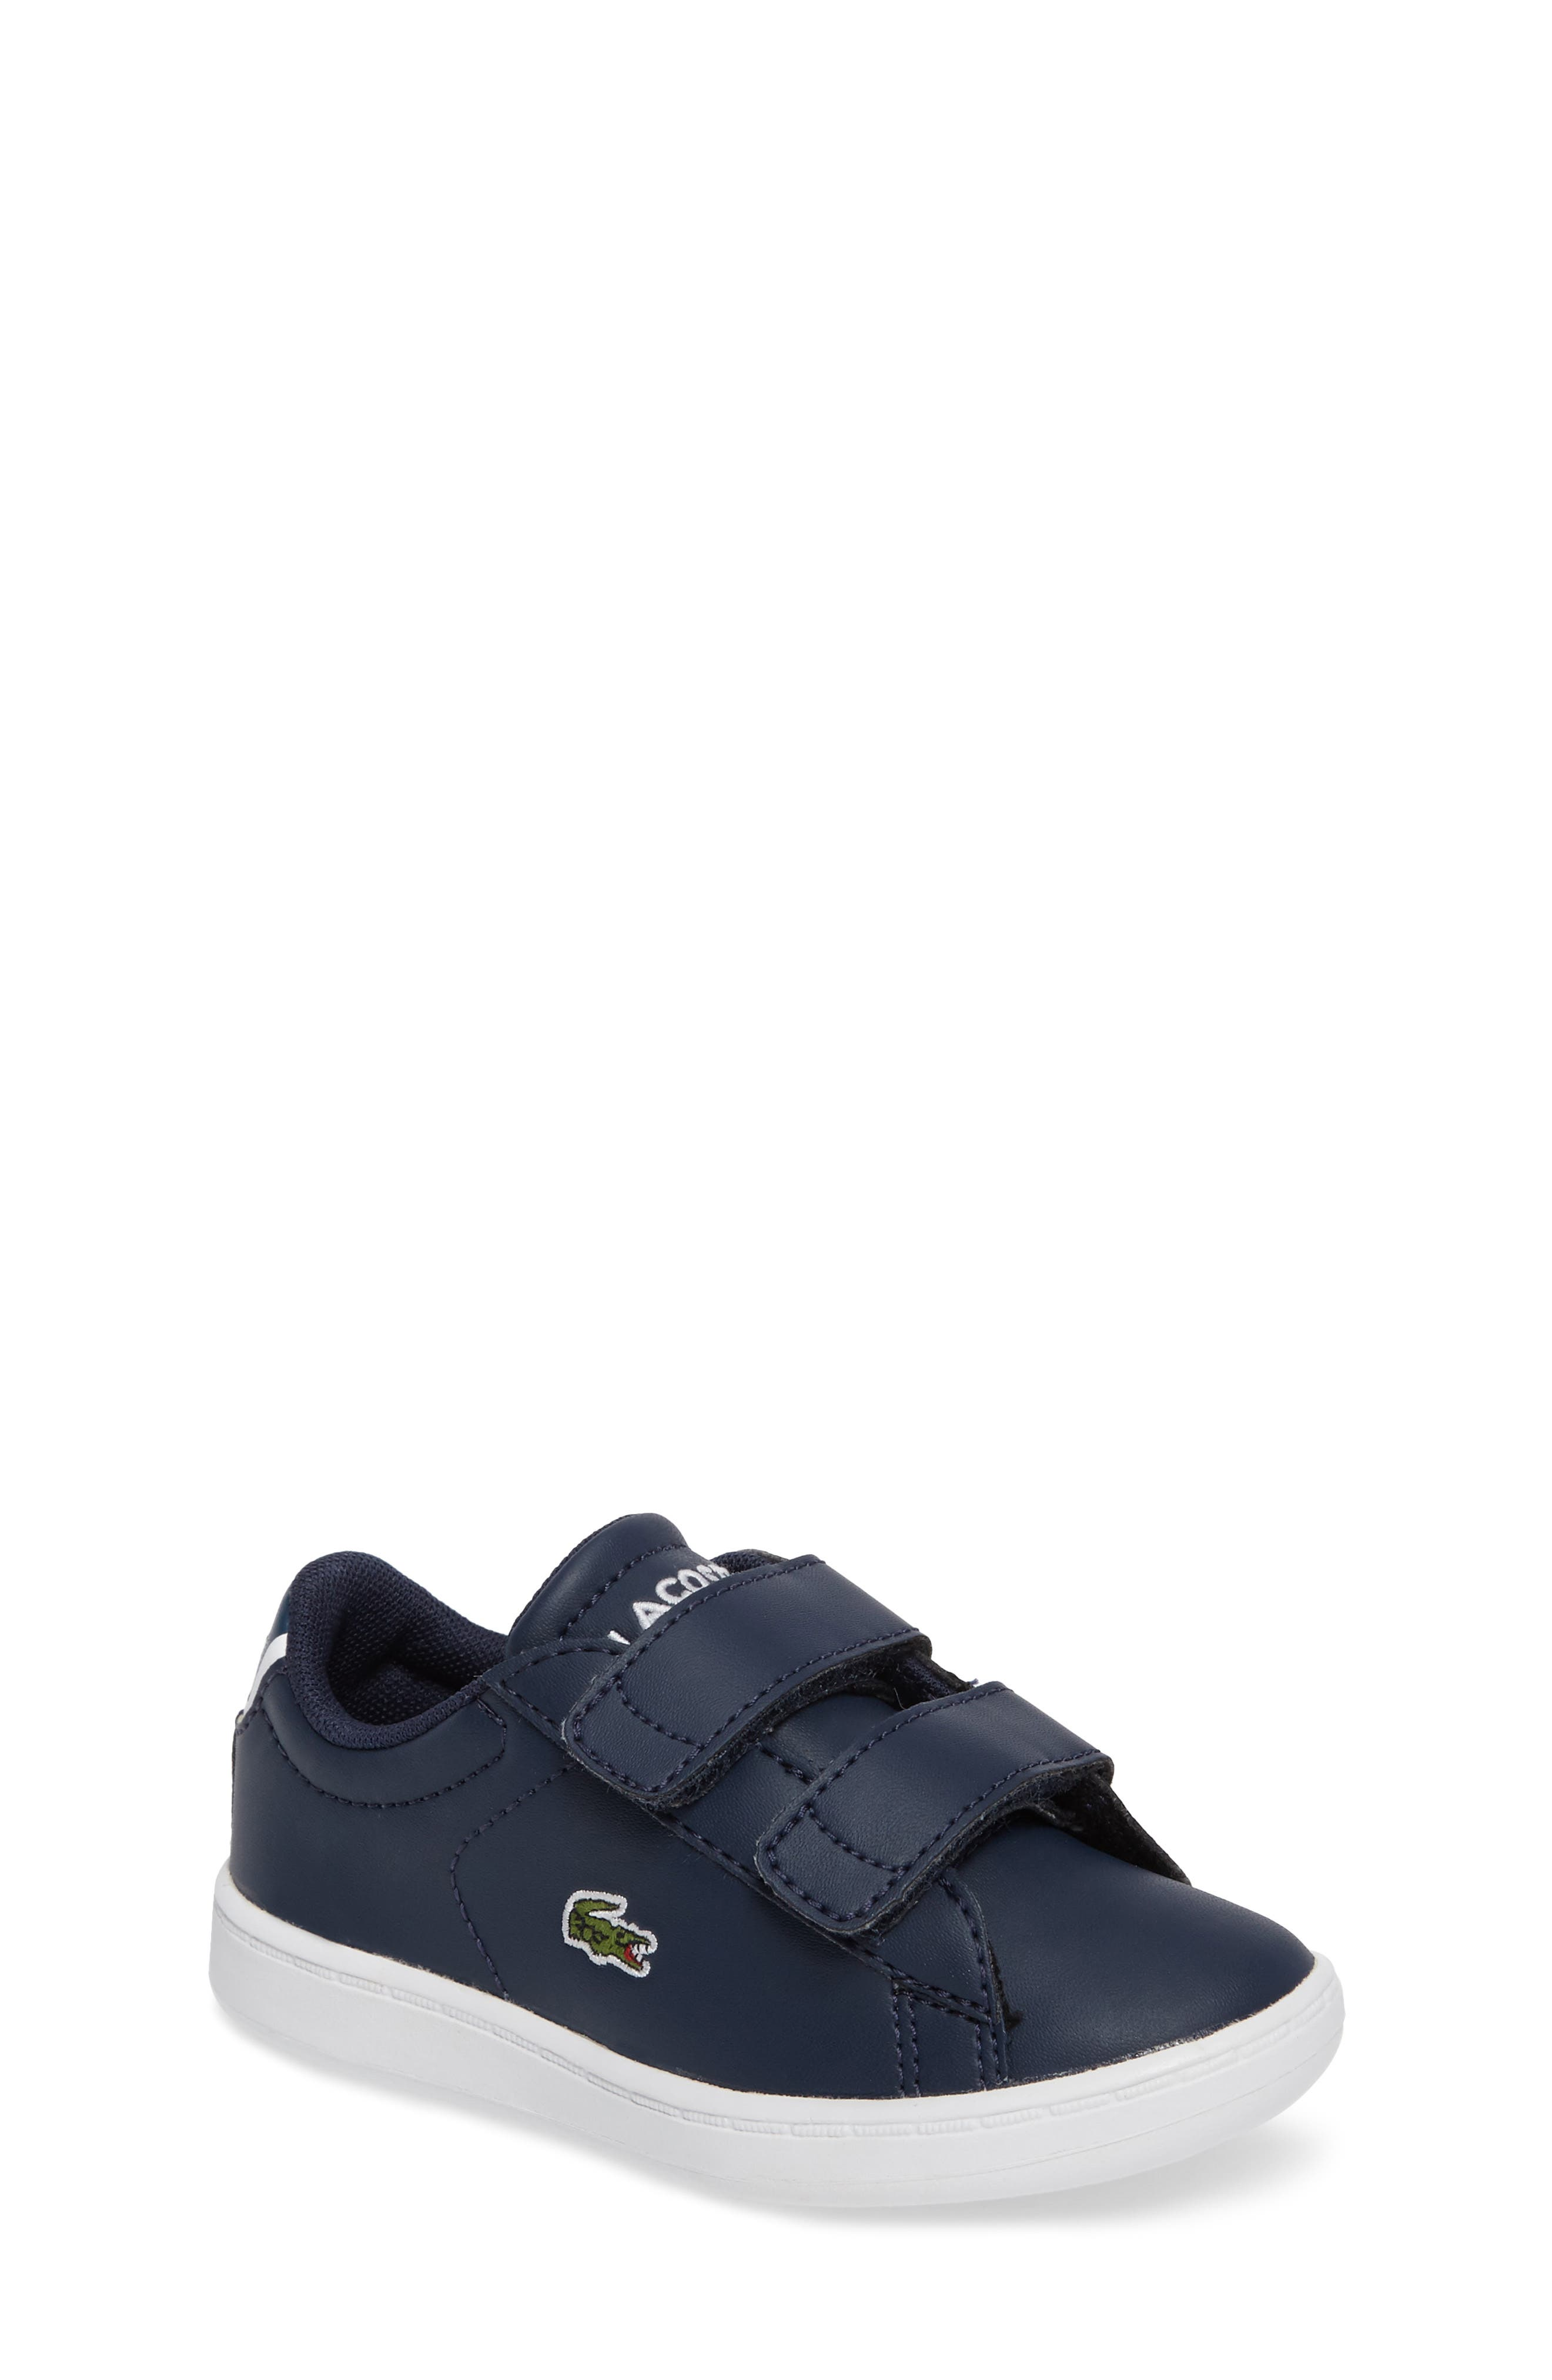 Carnaby Evo Sneaker,                         Main,                         color, Navy